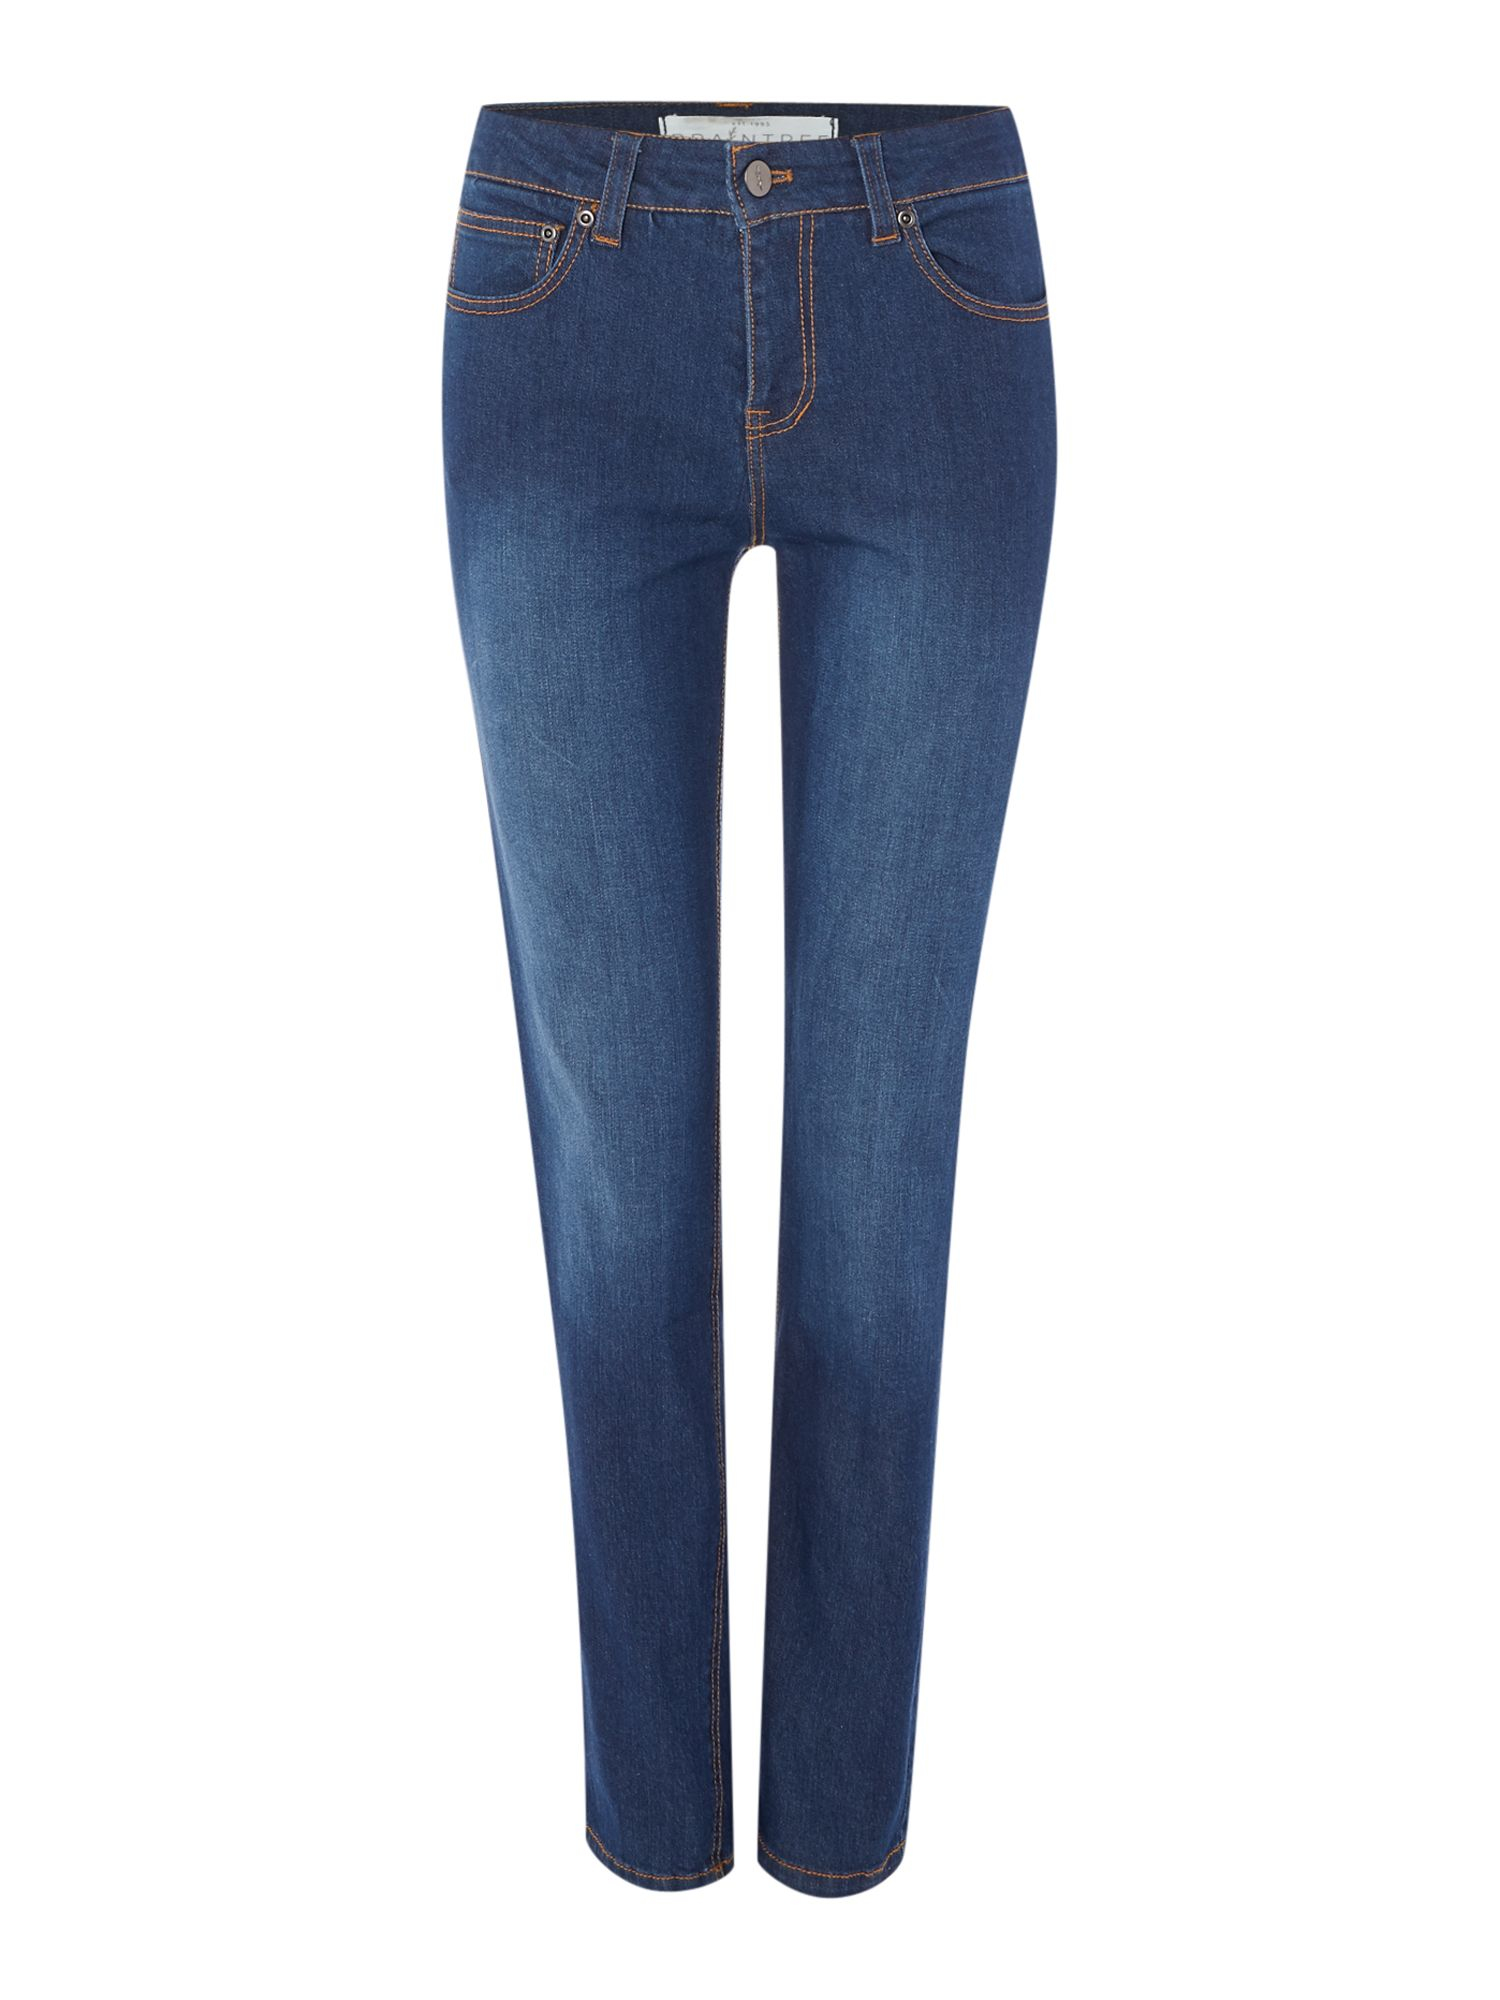 Braintree Denim Slim Leg Jeans in Indigo (Blue)